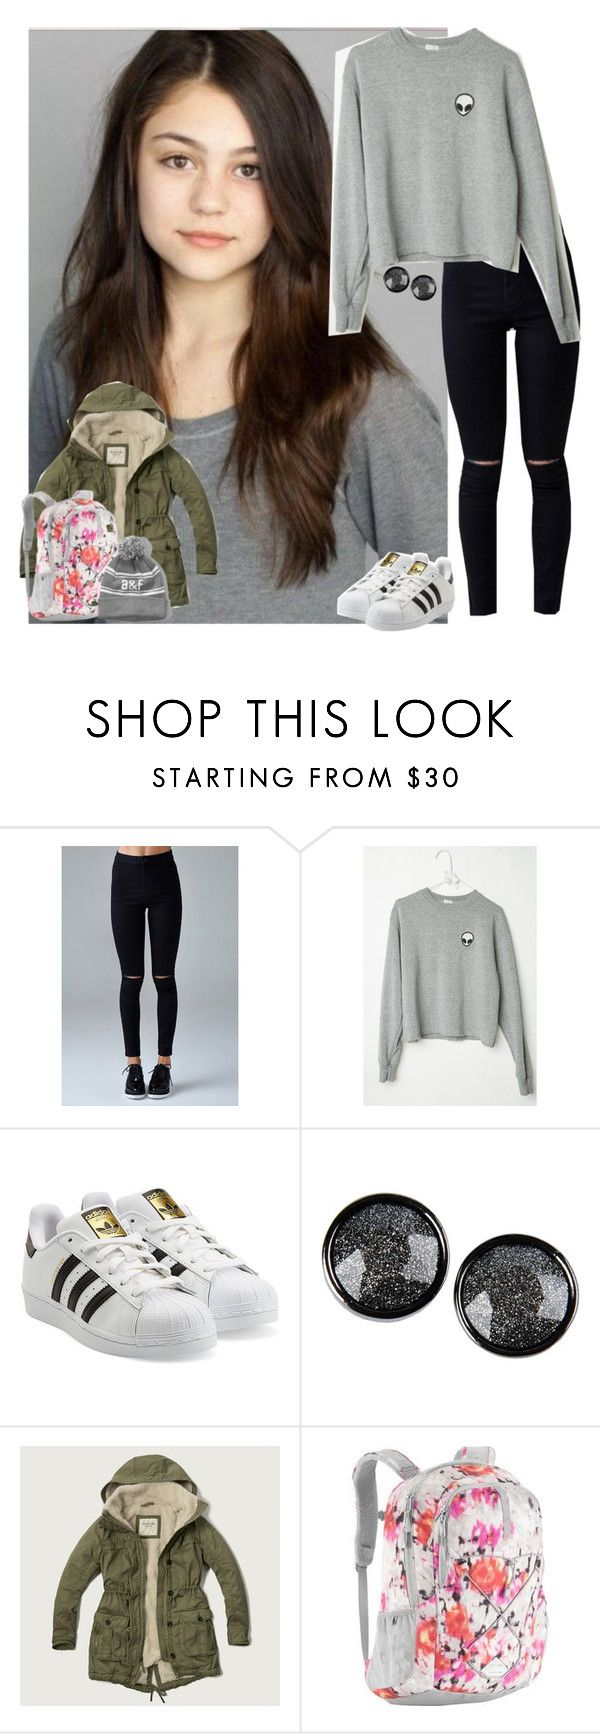 """""""Dream girls ootd: School"""" by meljordrum ❤ liked on Polyvore featuring Forever 21, adidas Originals, Marc by Marc Jacobs, Abercrombie & Fitch and The North Face"""